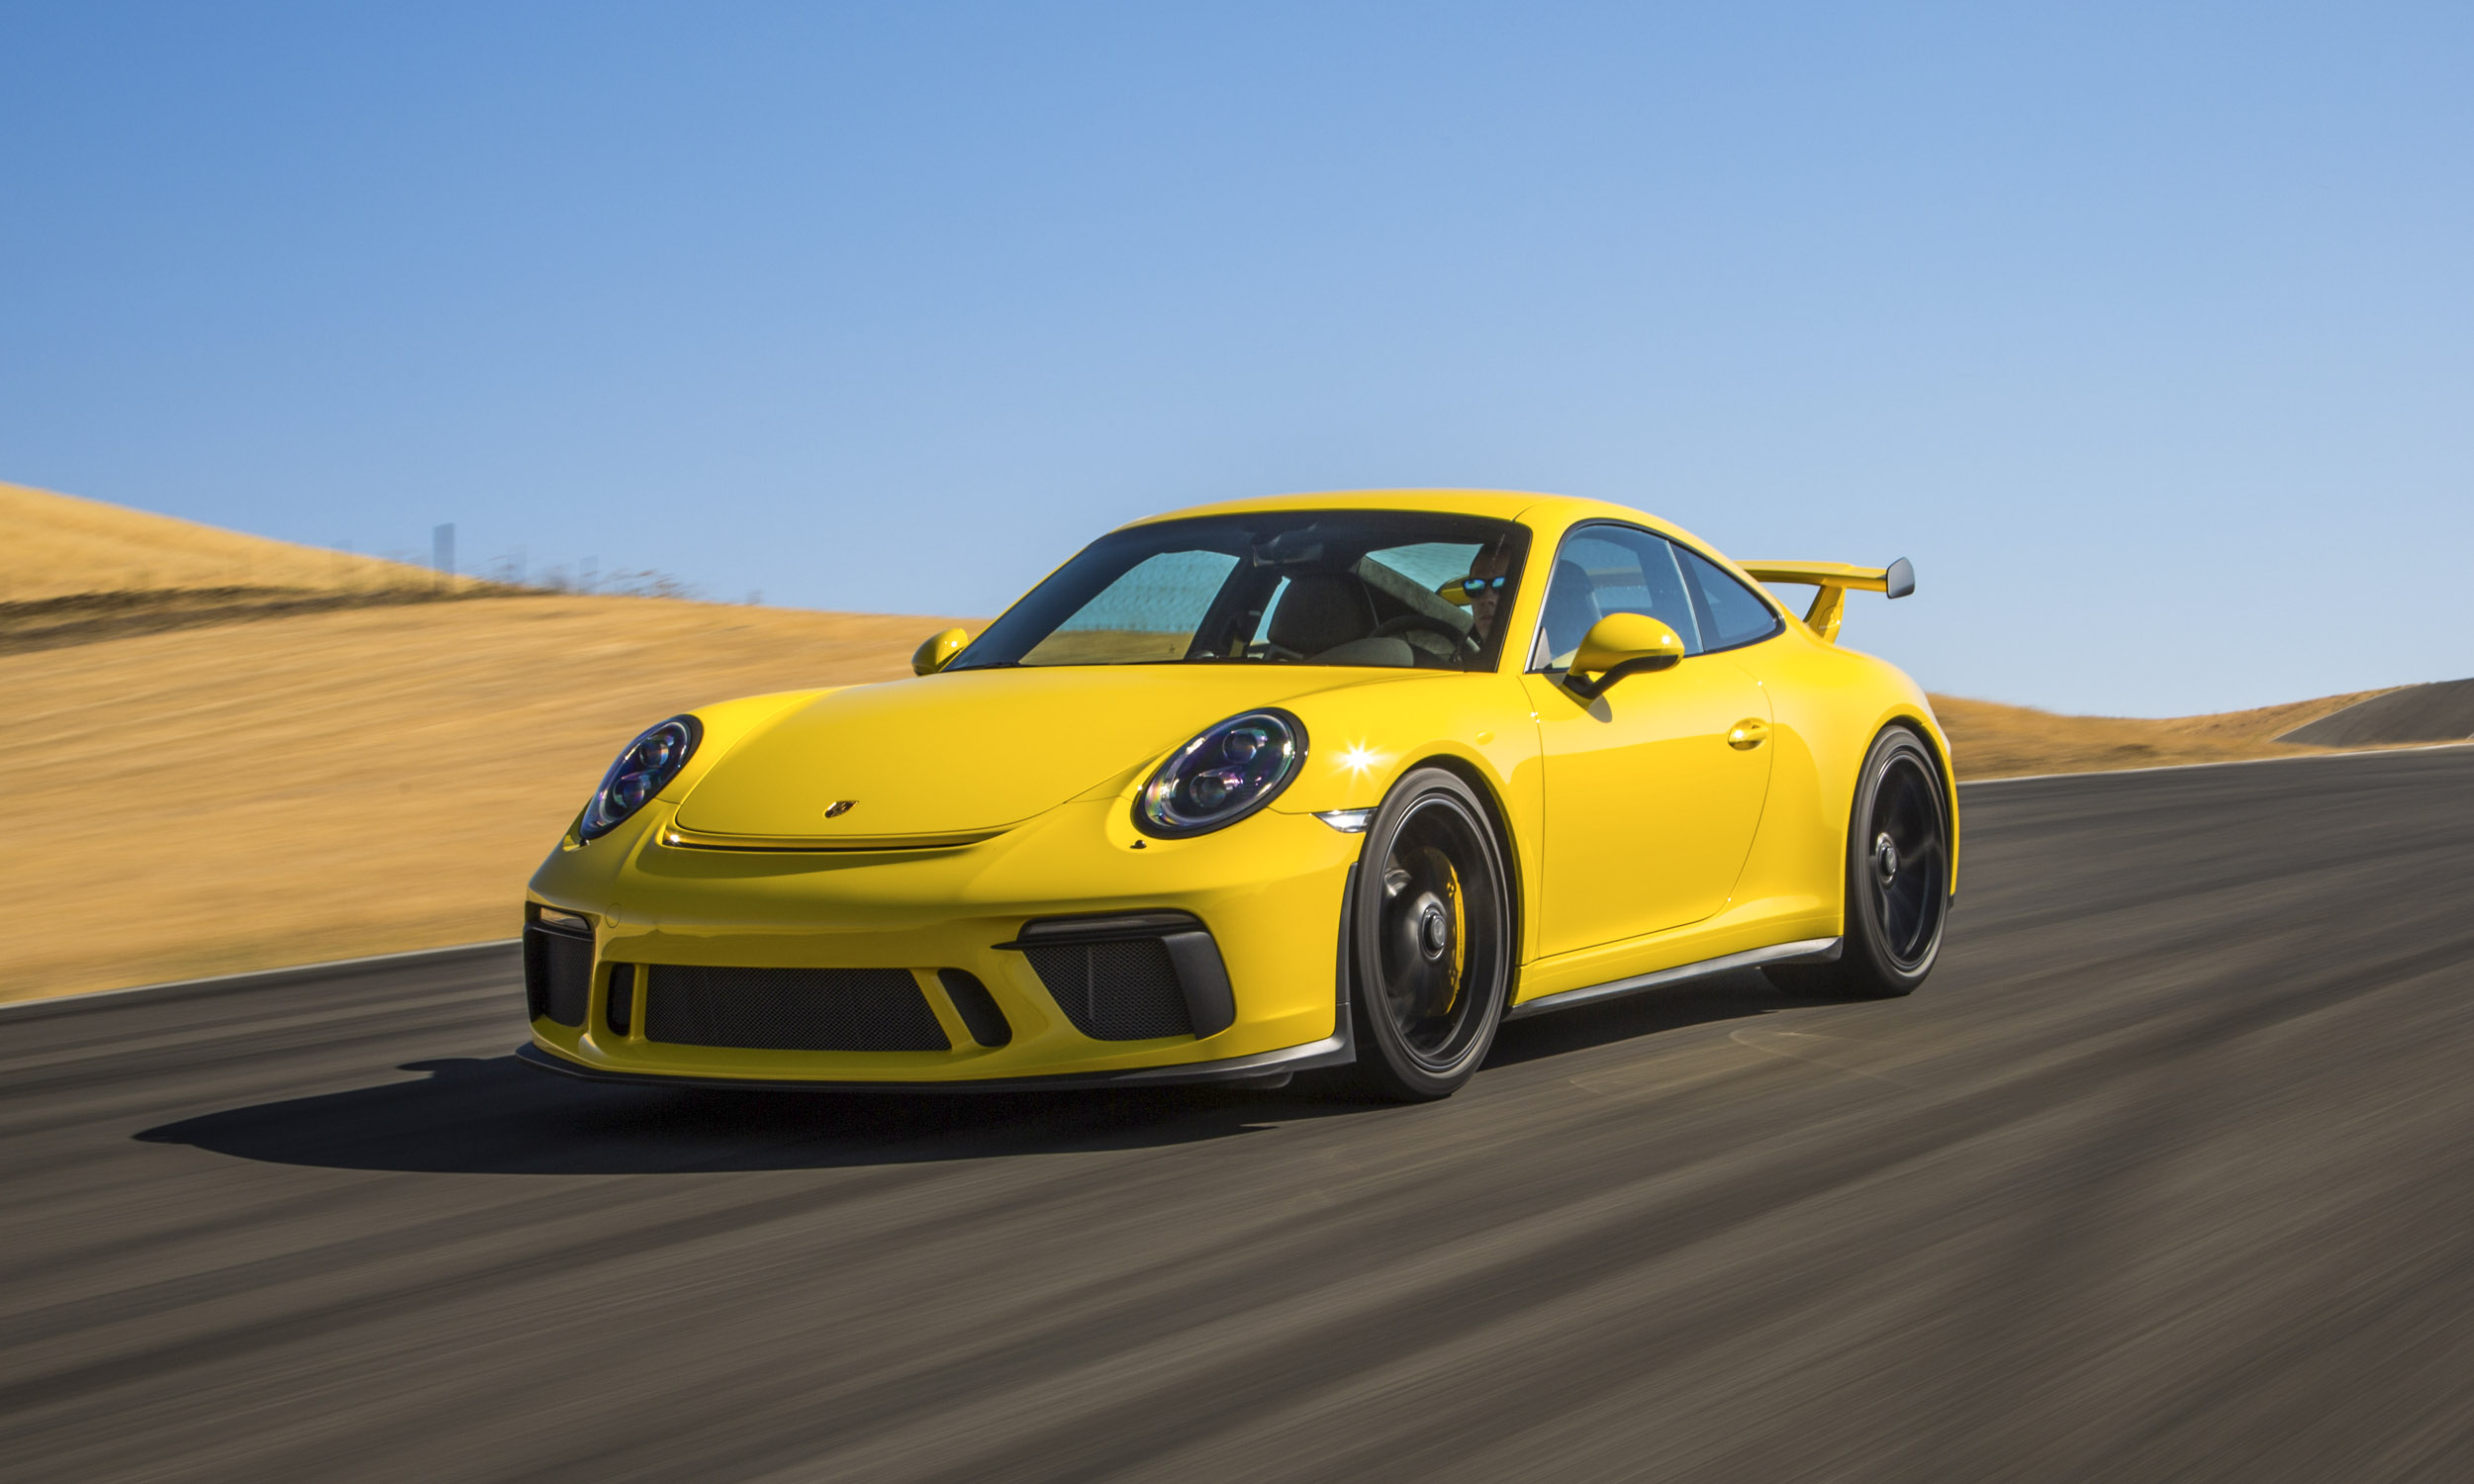 © Porsche Cars North America